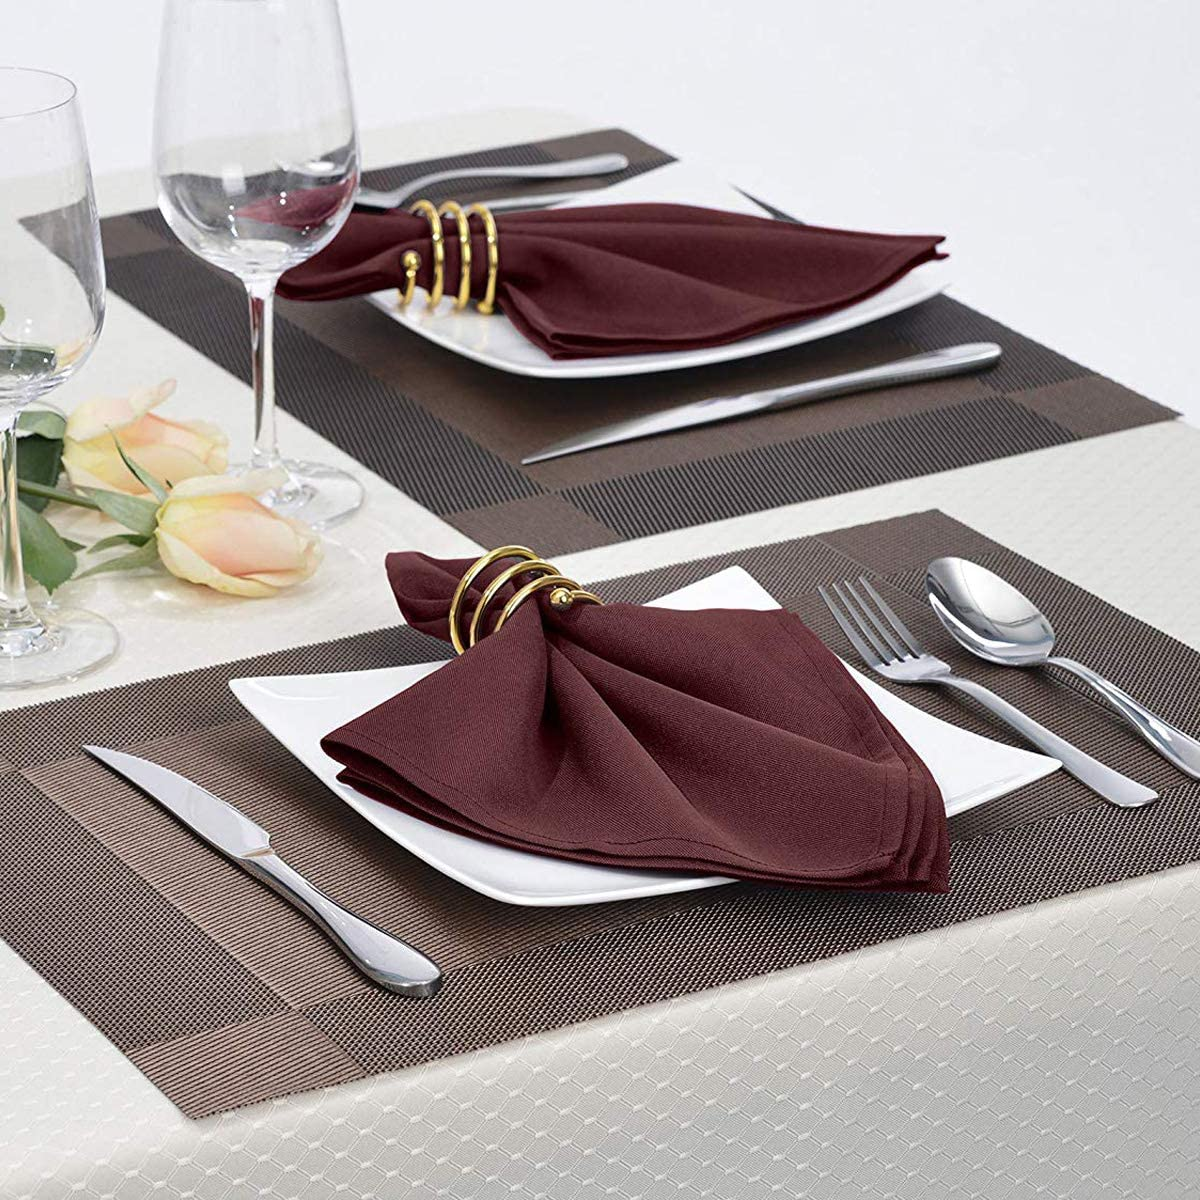 4X Cloth Napkins for Wedding Party Restaurant Dinner Family Gatherings Washable